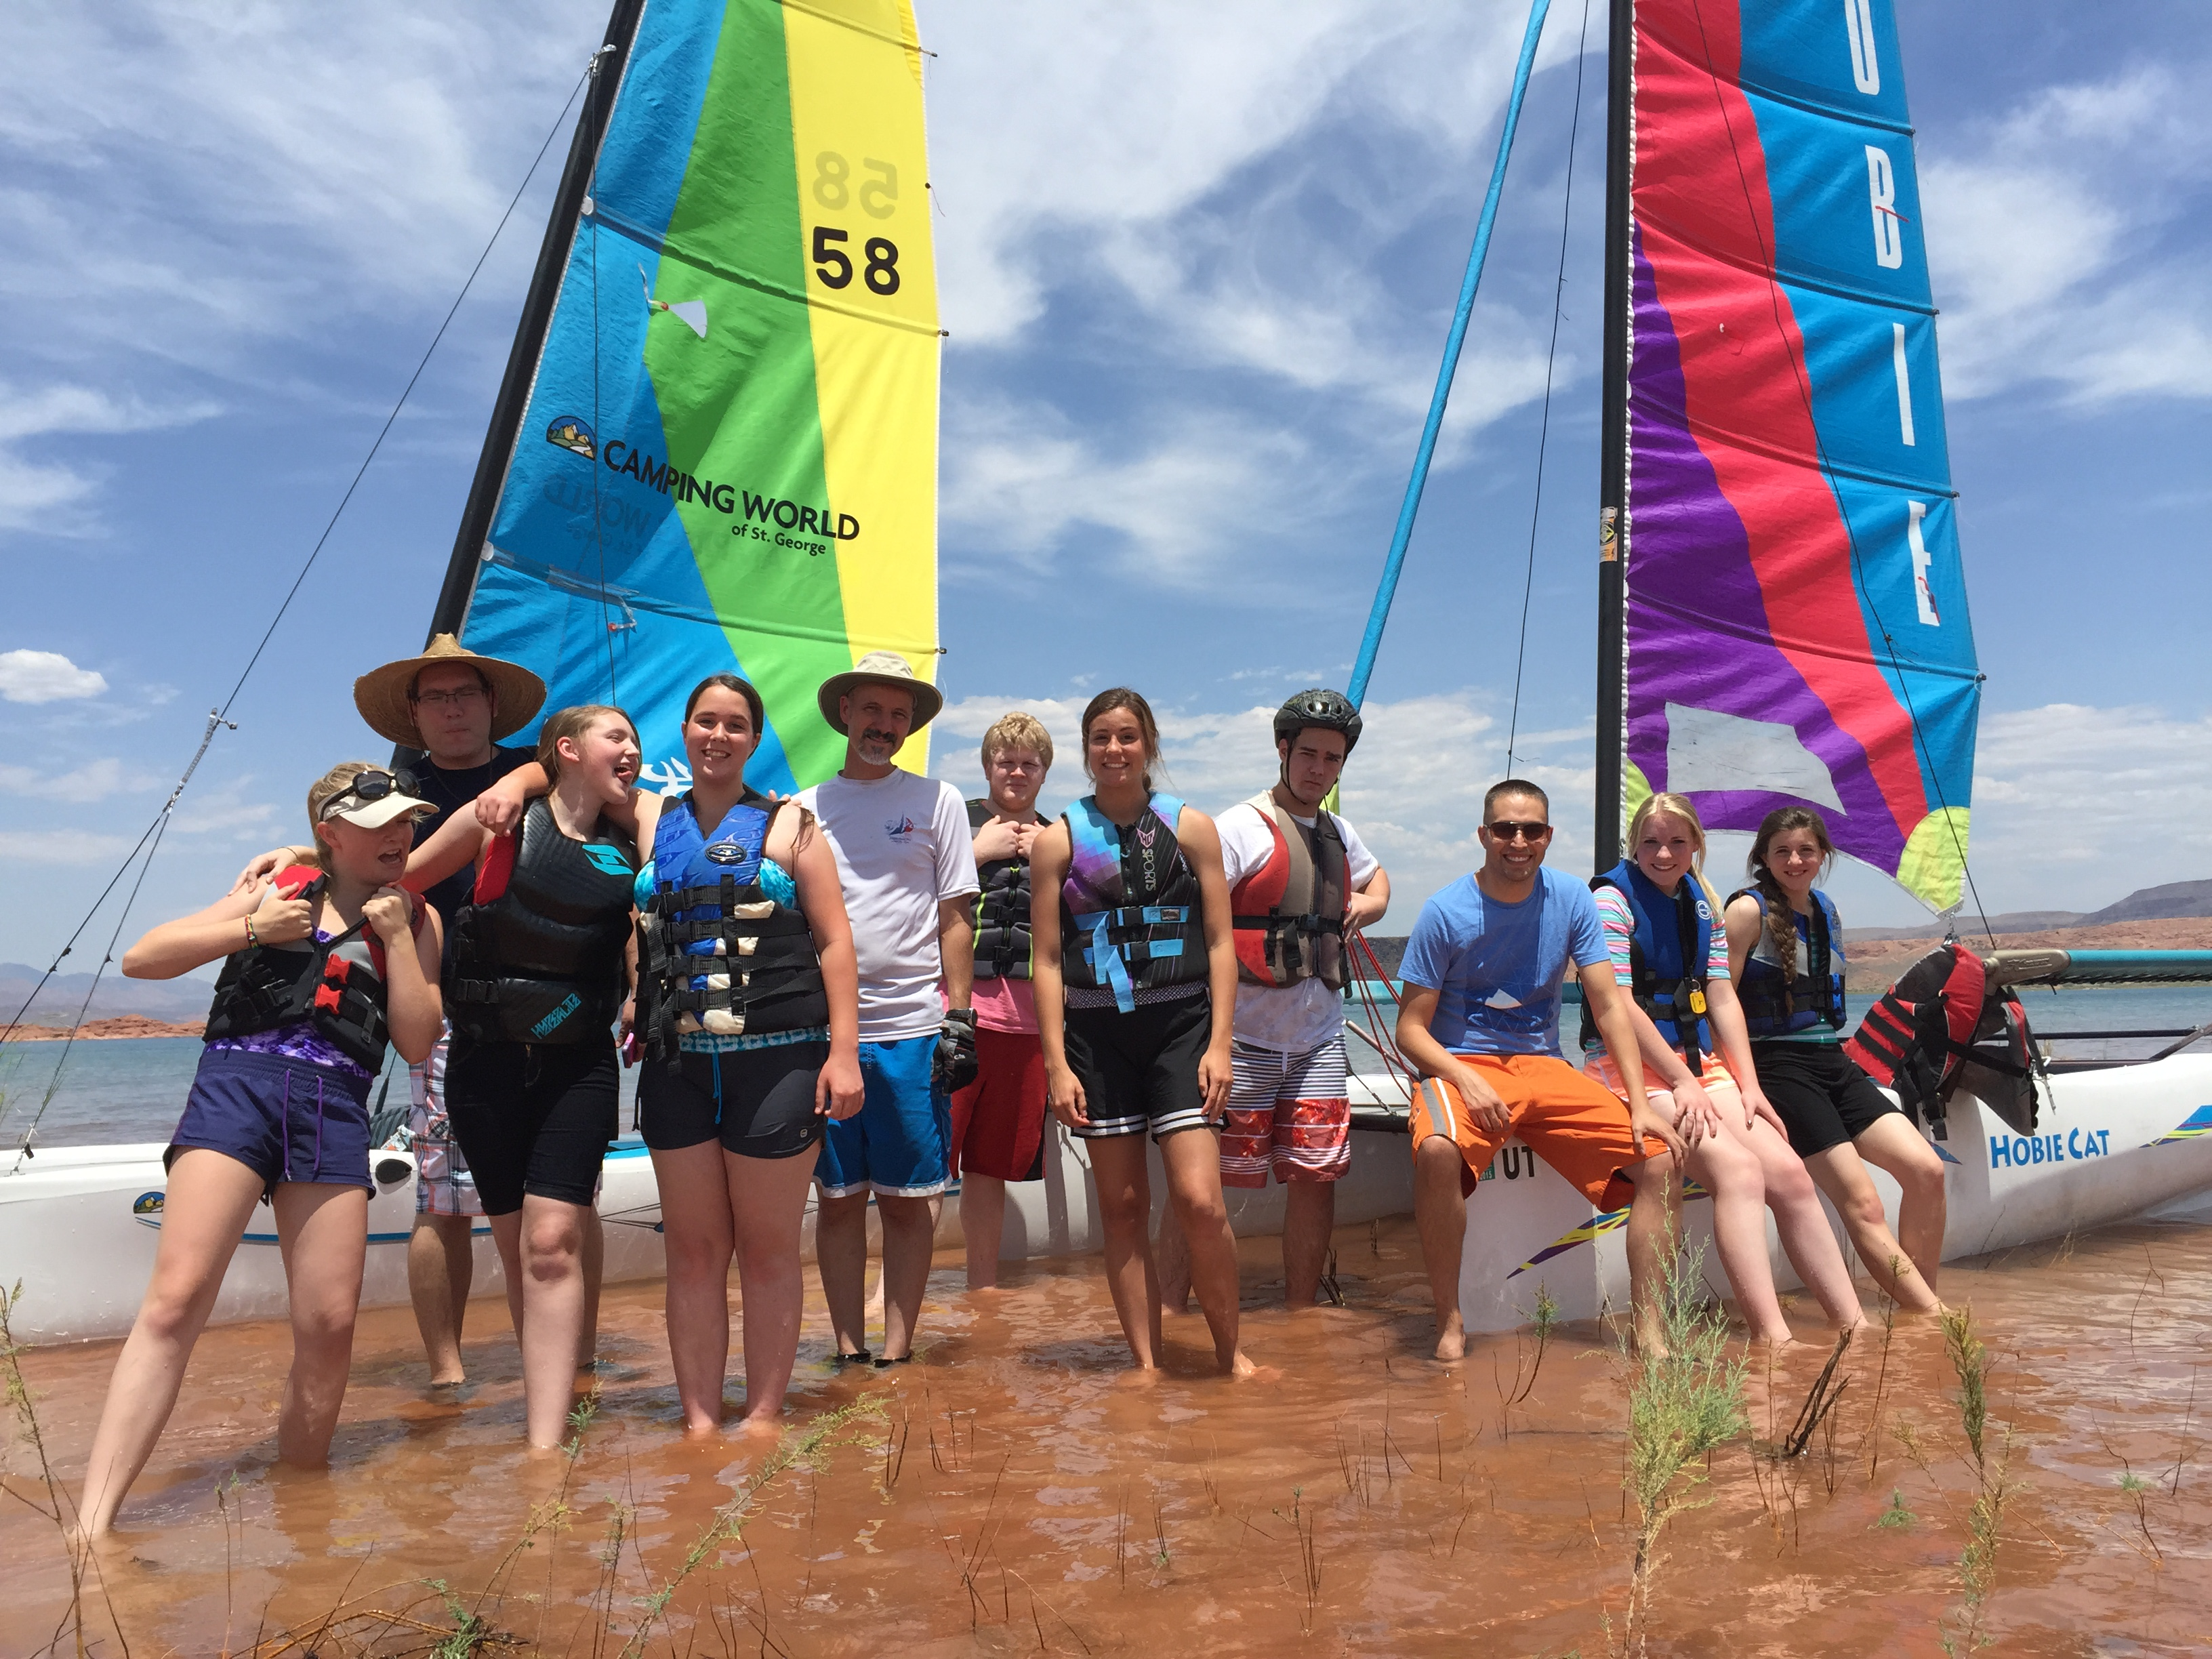 This 2015 photo shows youth posing by some sailboats during Raul Hevia's Youth Summer Sailing School at Sand Hollow Reservoir, Sand Hollow State Park, Hurricane, Utah, Summer 2015 | Photo courtesy of Raul Hevia, St. George News